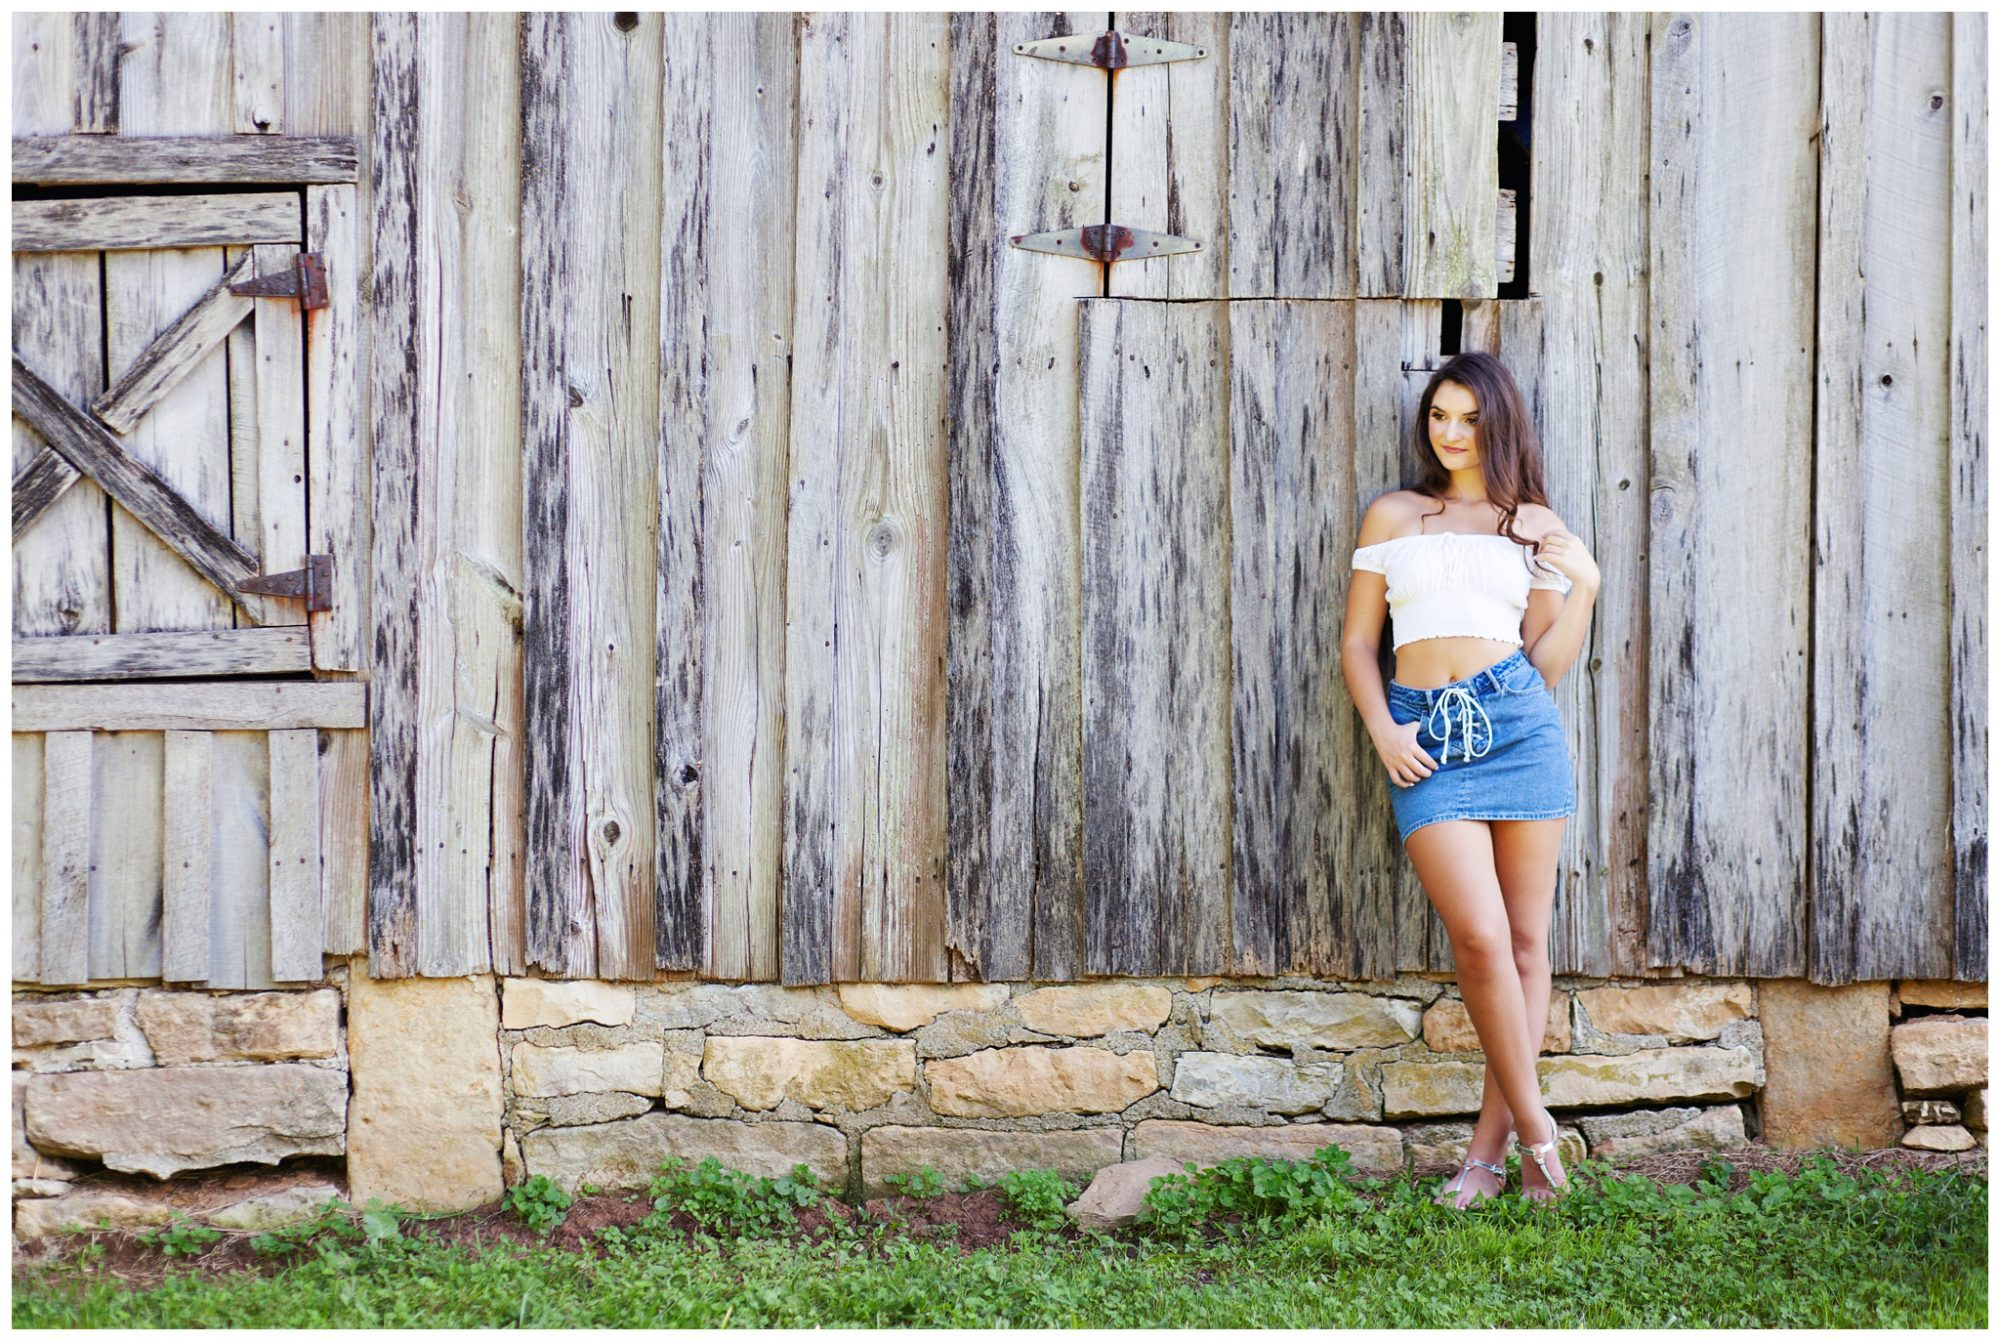 High school senior standing against old wooden barn